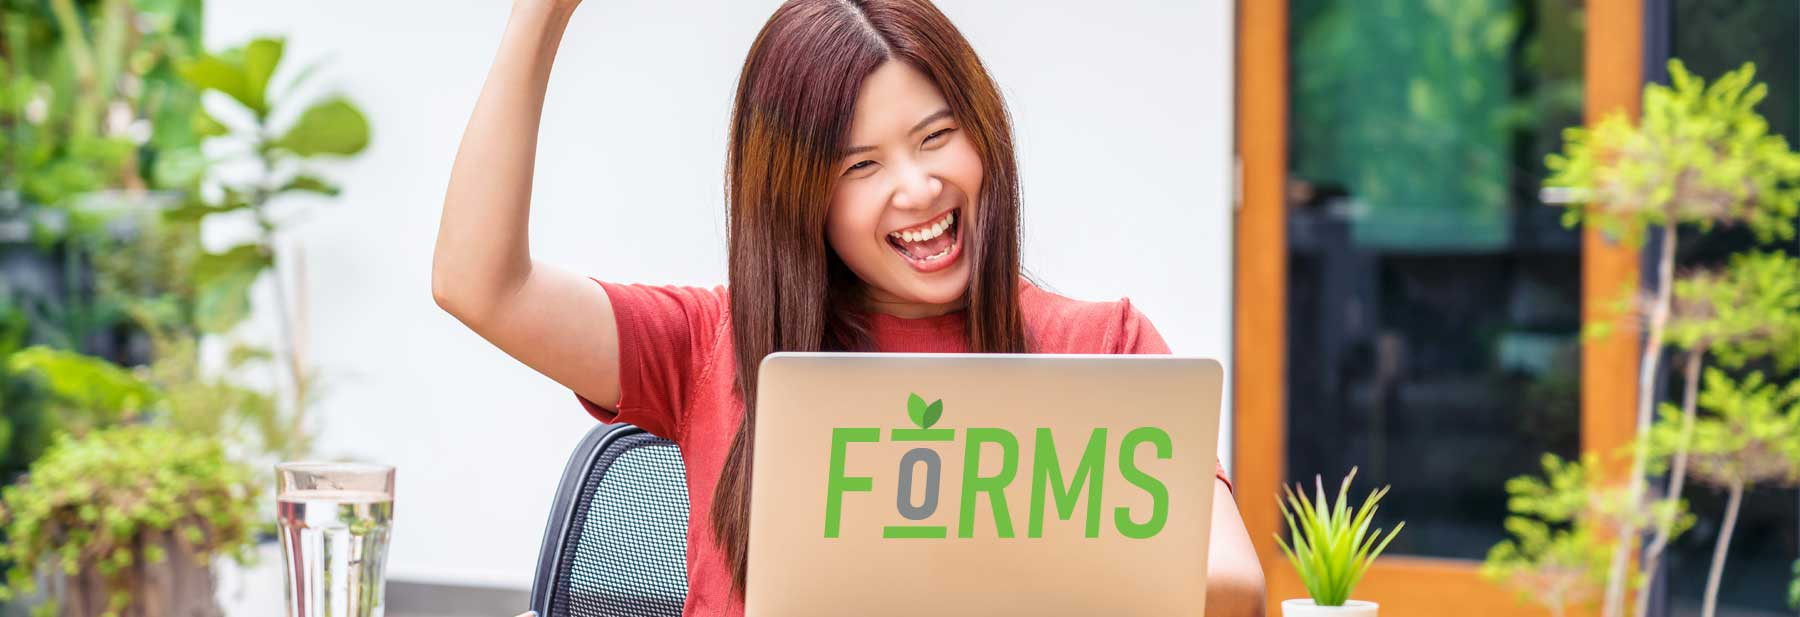 eForms and e-signatures integrated into a LMS